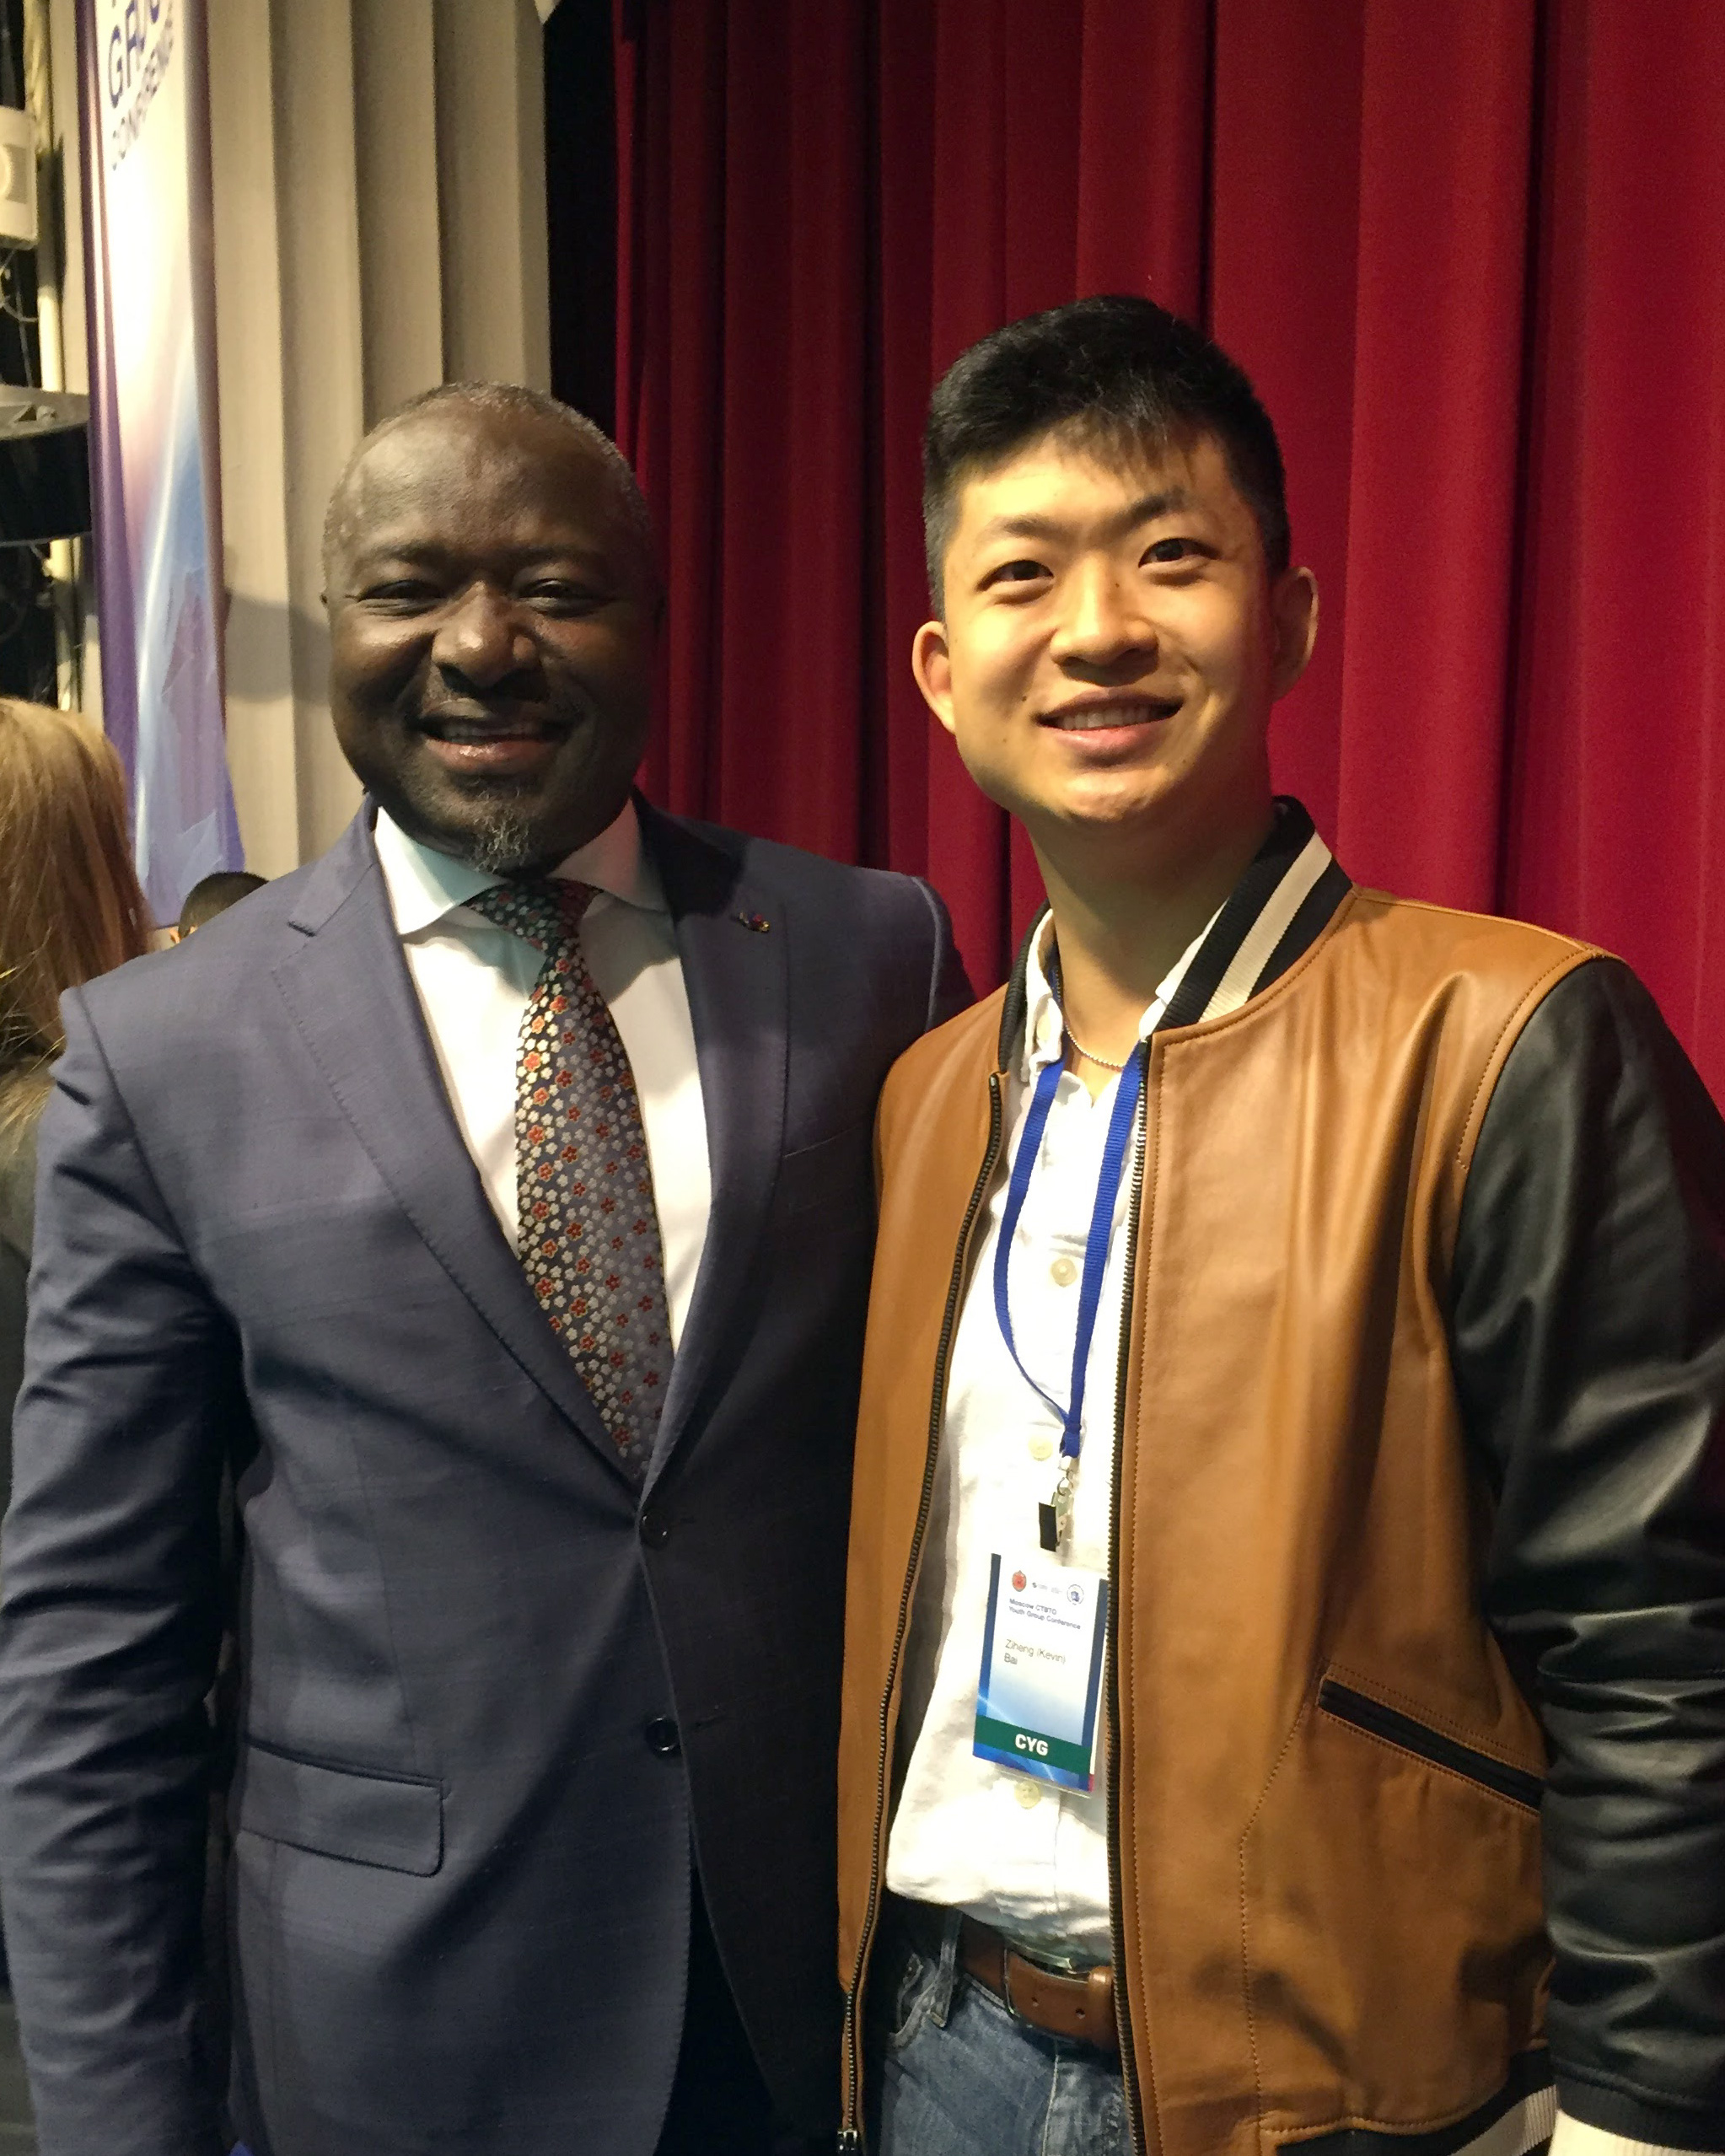 Kevin Bai in Moscow with Dr. Lassina Zerbo, the current secretary of the CTBTO